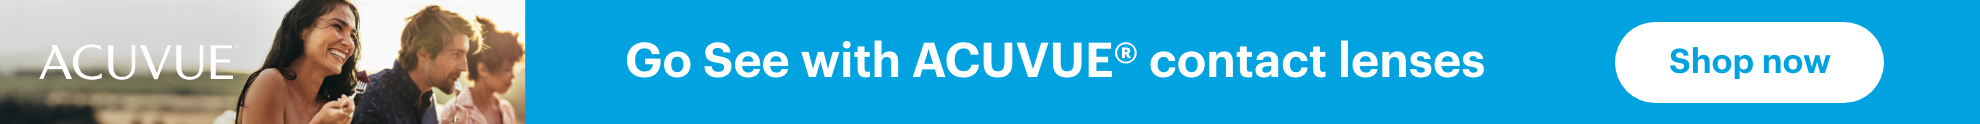 Go See with ACUVUE contact lenses. Shop now.